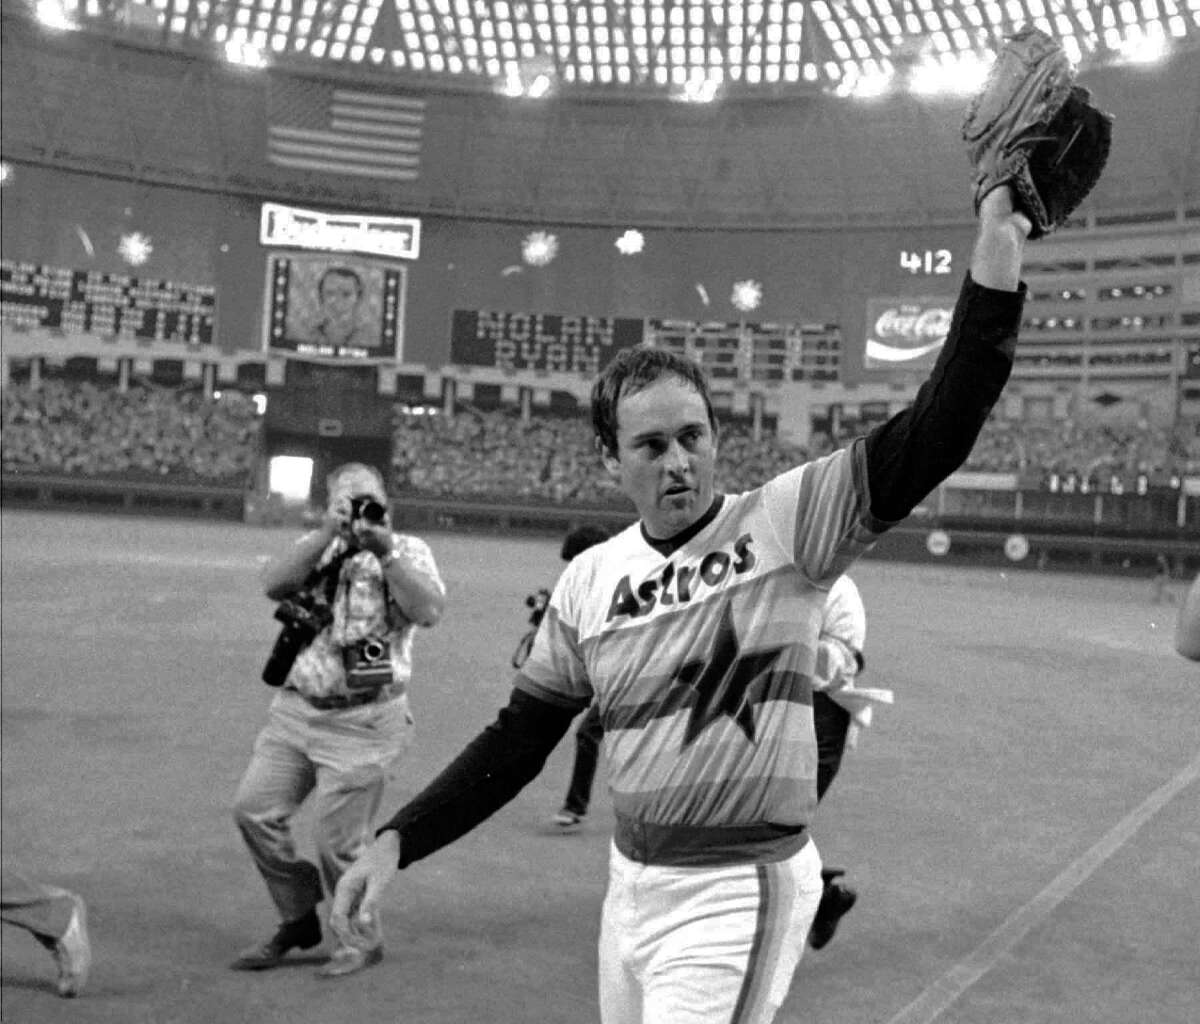 Ryan left a lasting mark on his hometown and the Houston area. As an Astro, he waves to the crowd after pitching his fifth career no-hitter in Houston in 1981.